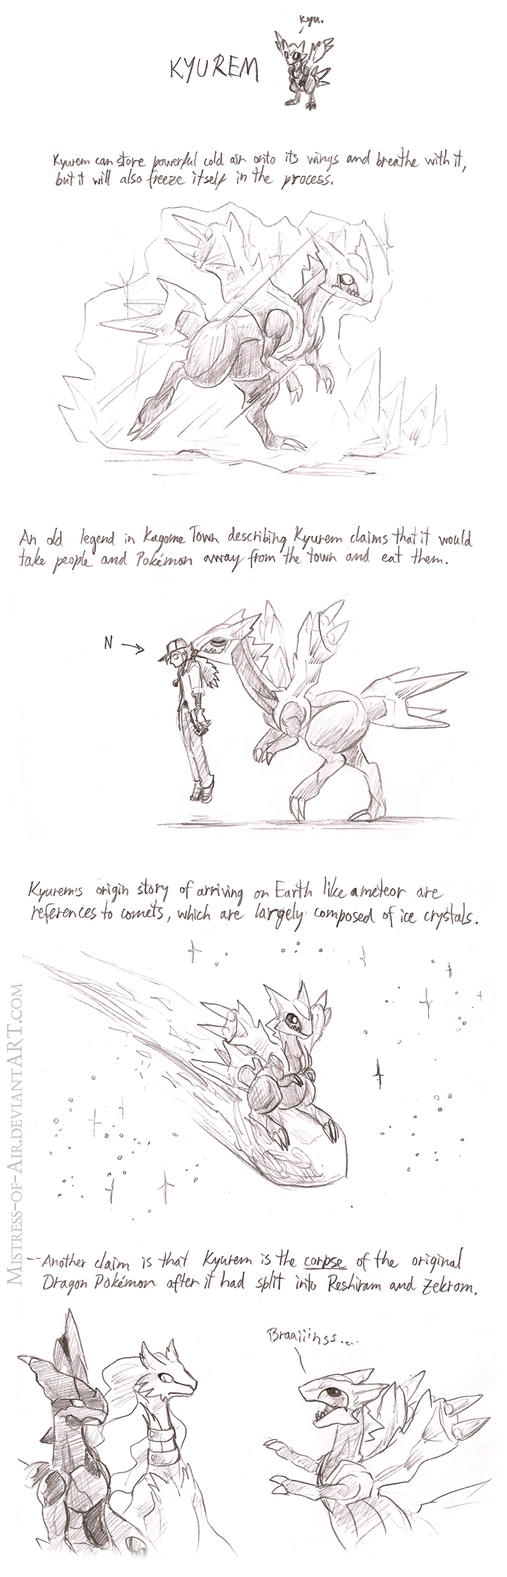 Kyurem, absense Pokemon. by Sysirauta